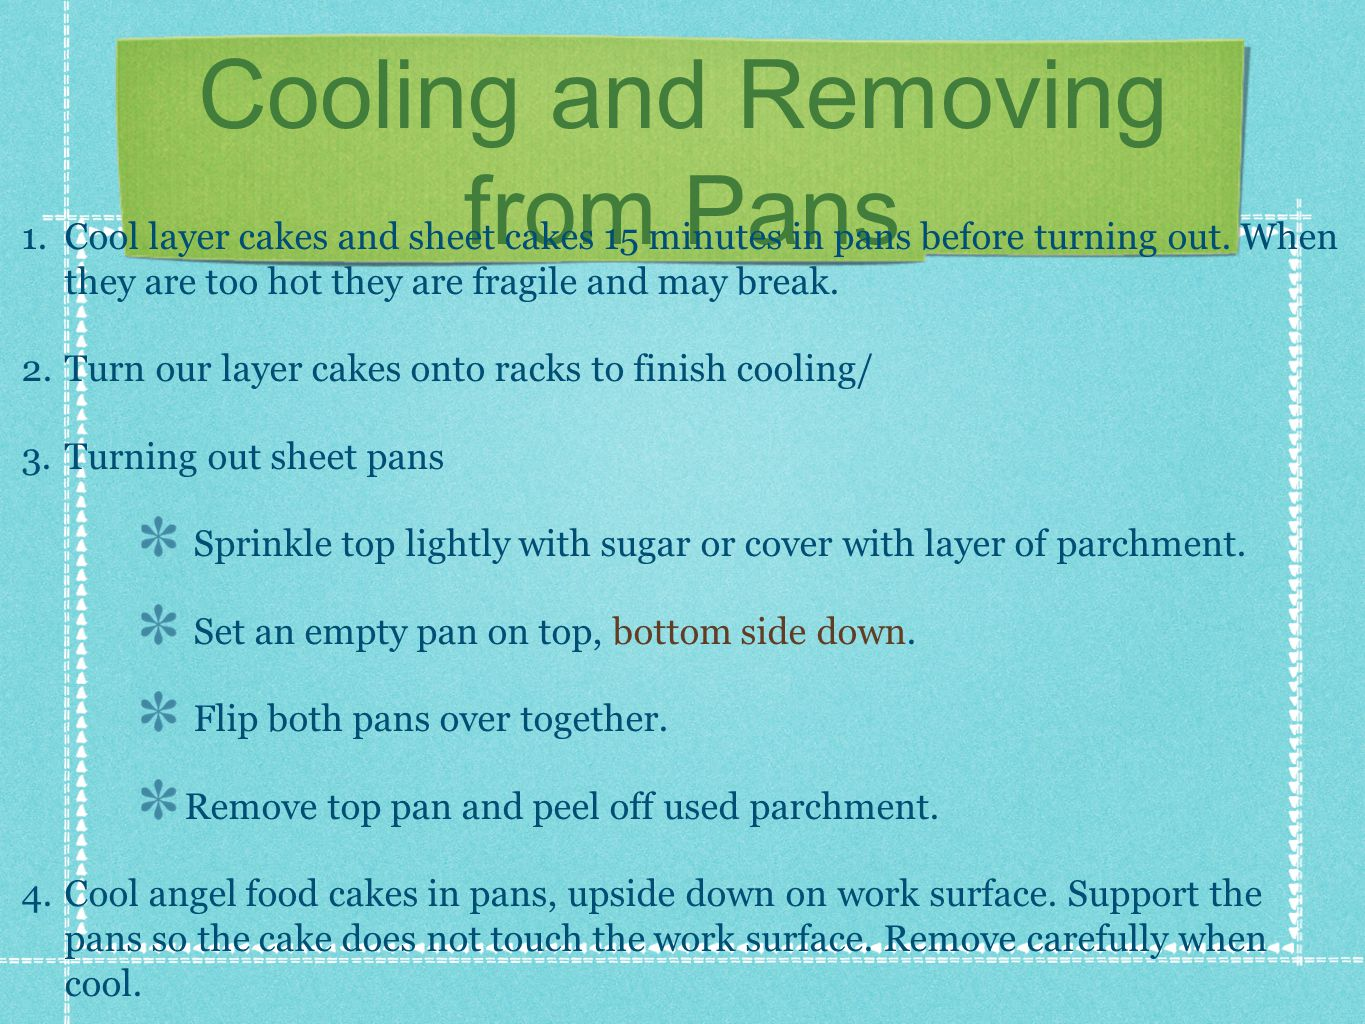 Cooling and Removing from Pans 1.